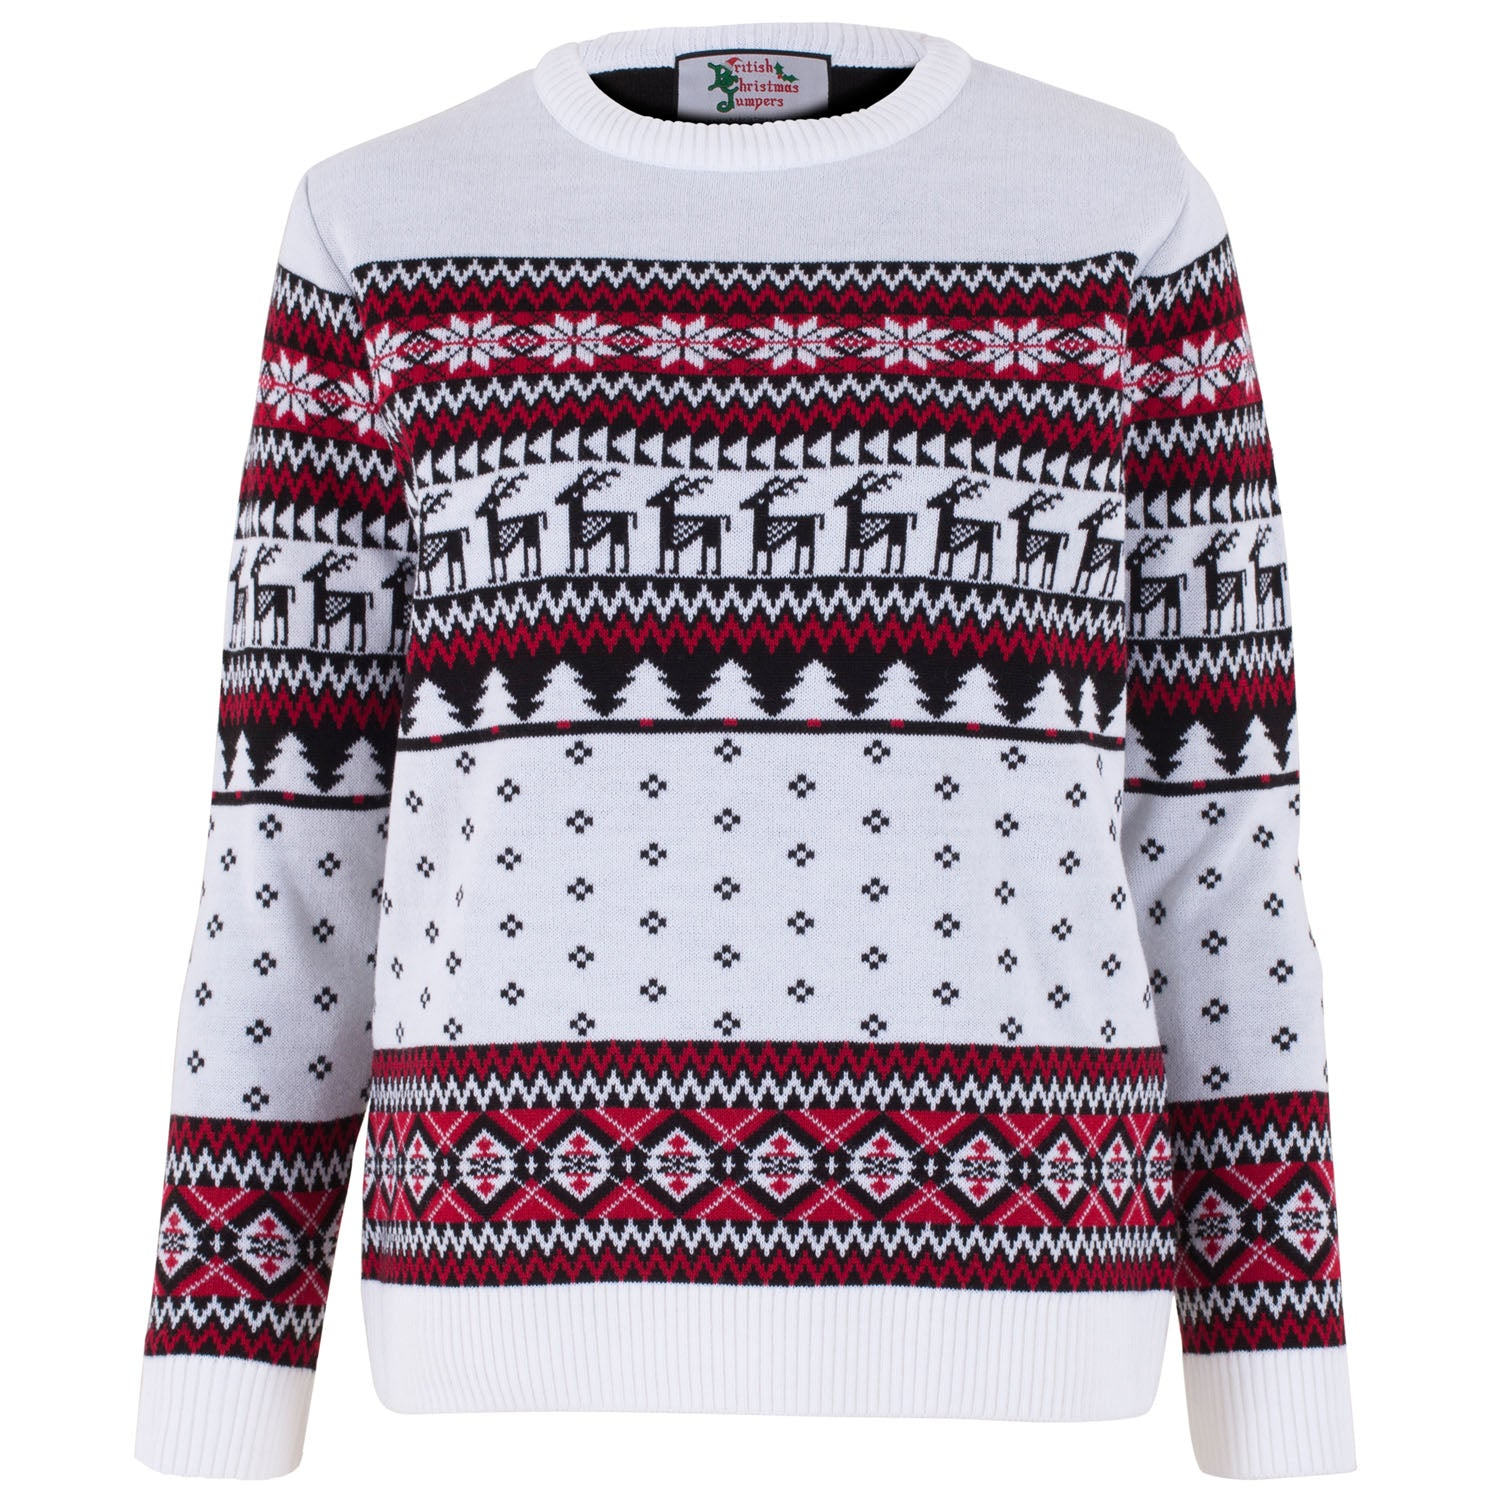 Christmas Jumpers Womens Christmas Sweaters by British Christmas Jumpers